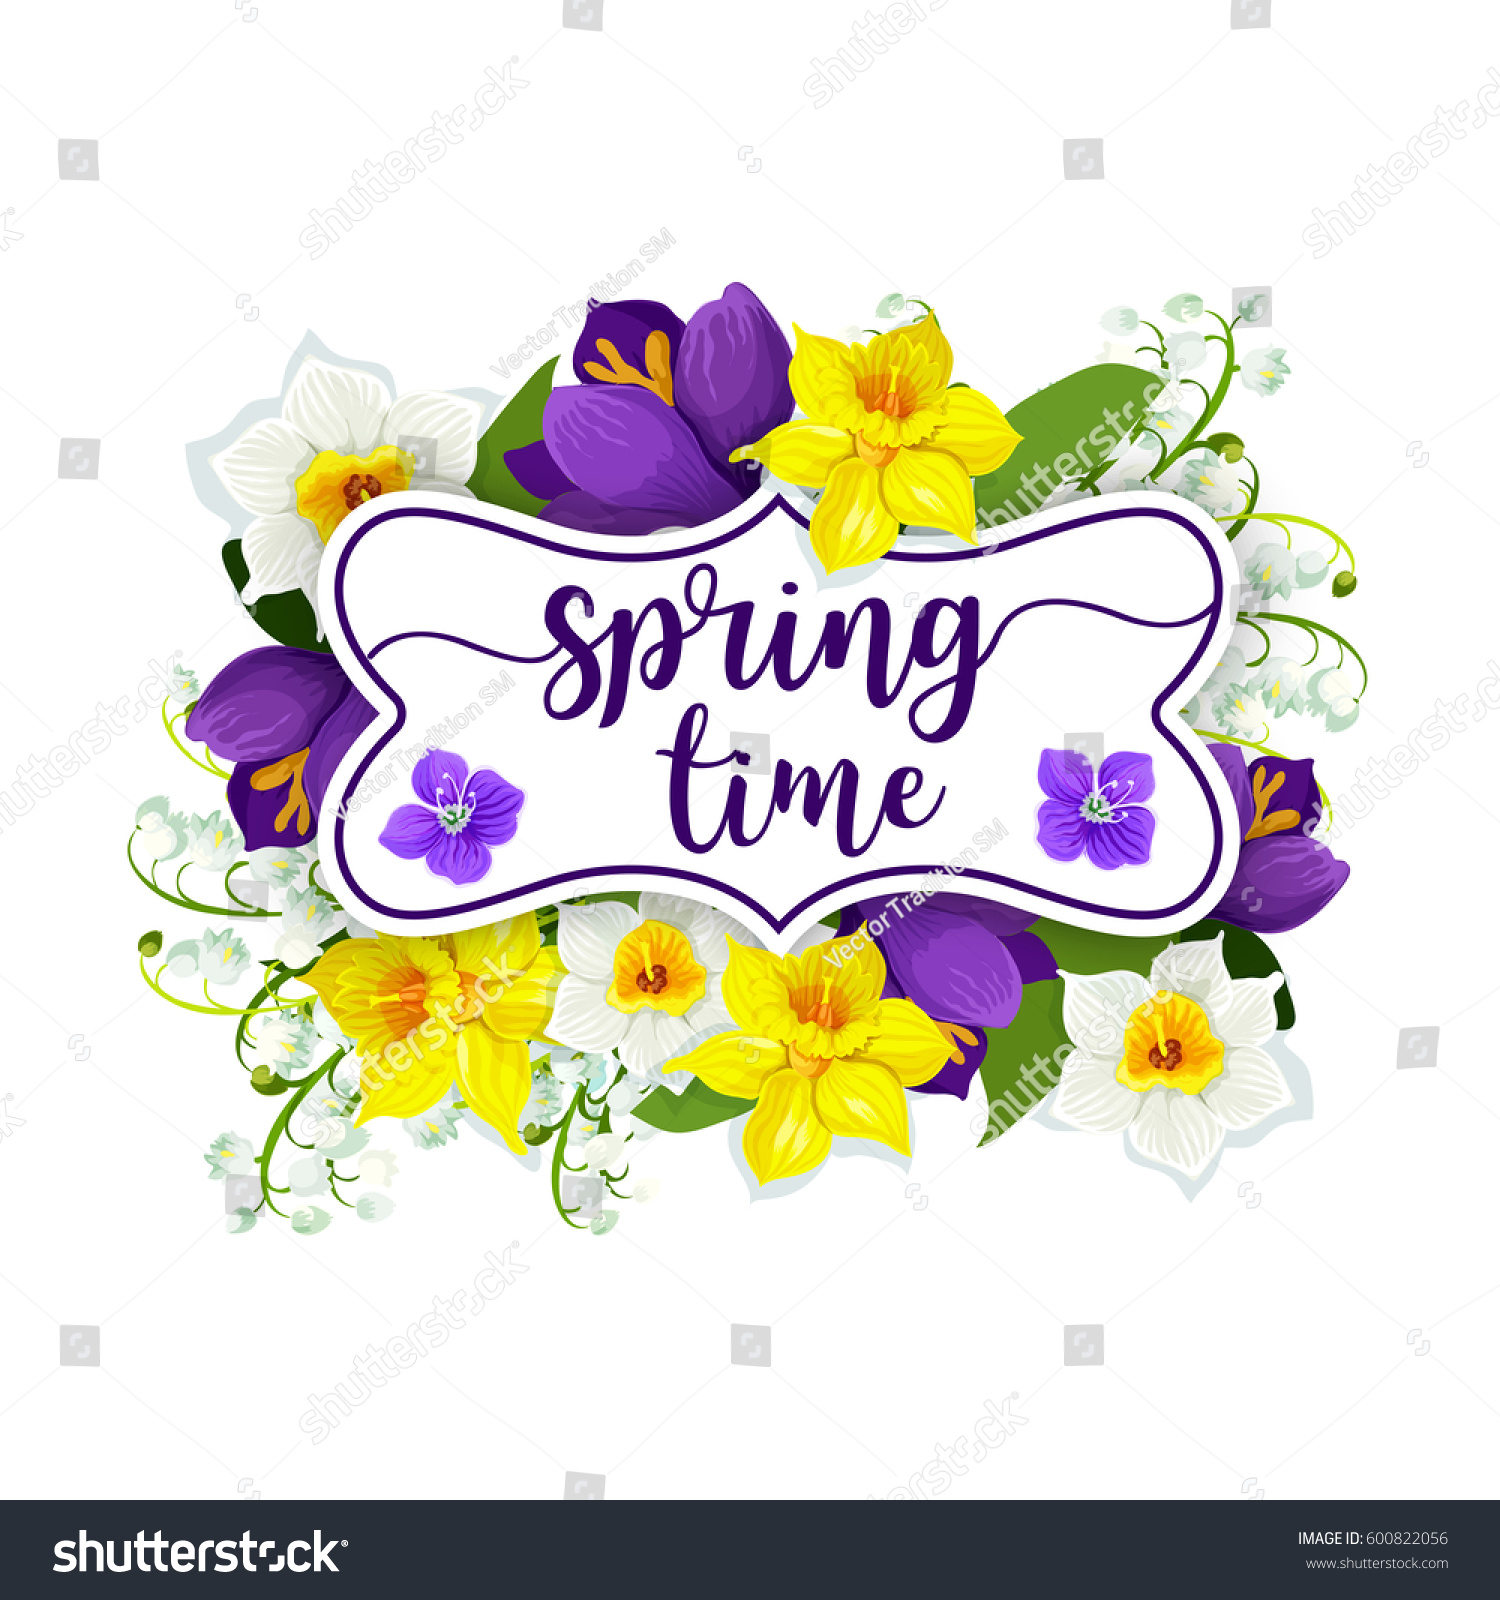 Spring Time Daffodils Crocuses Narcissus Lily Stock Vector Royalty